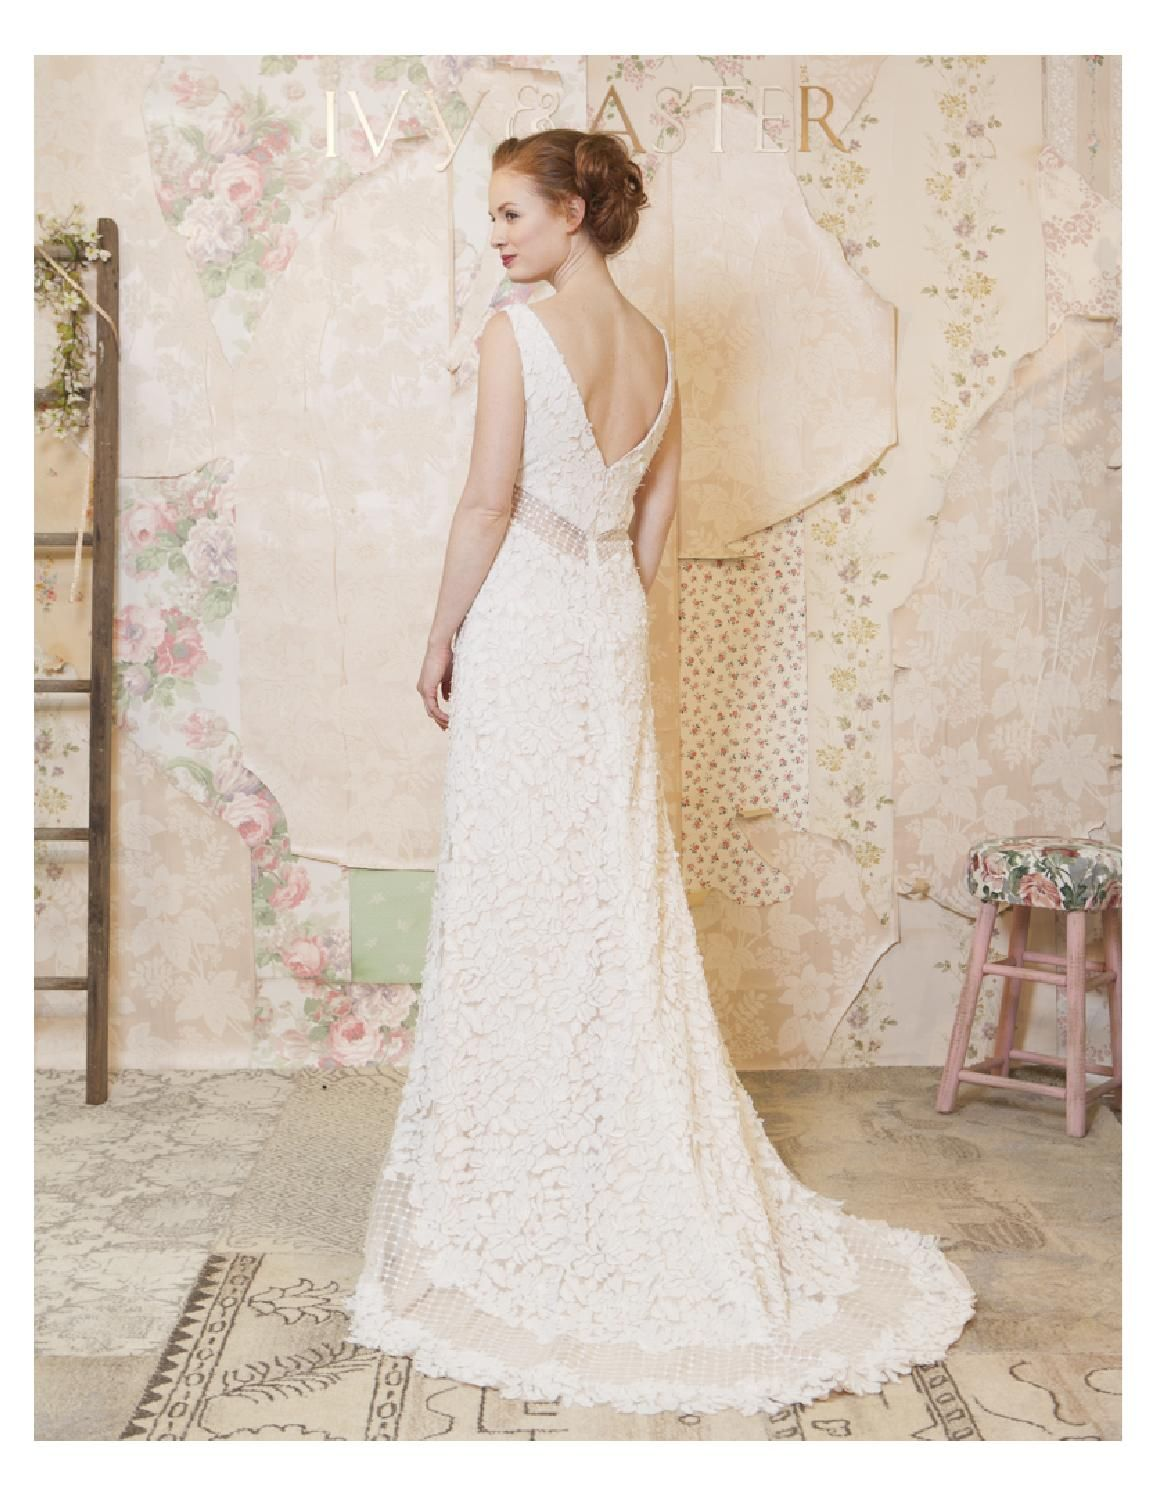 ISSUU - Ivy & Aster Spring 2016 Bridal Collection by Ivy & Aster